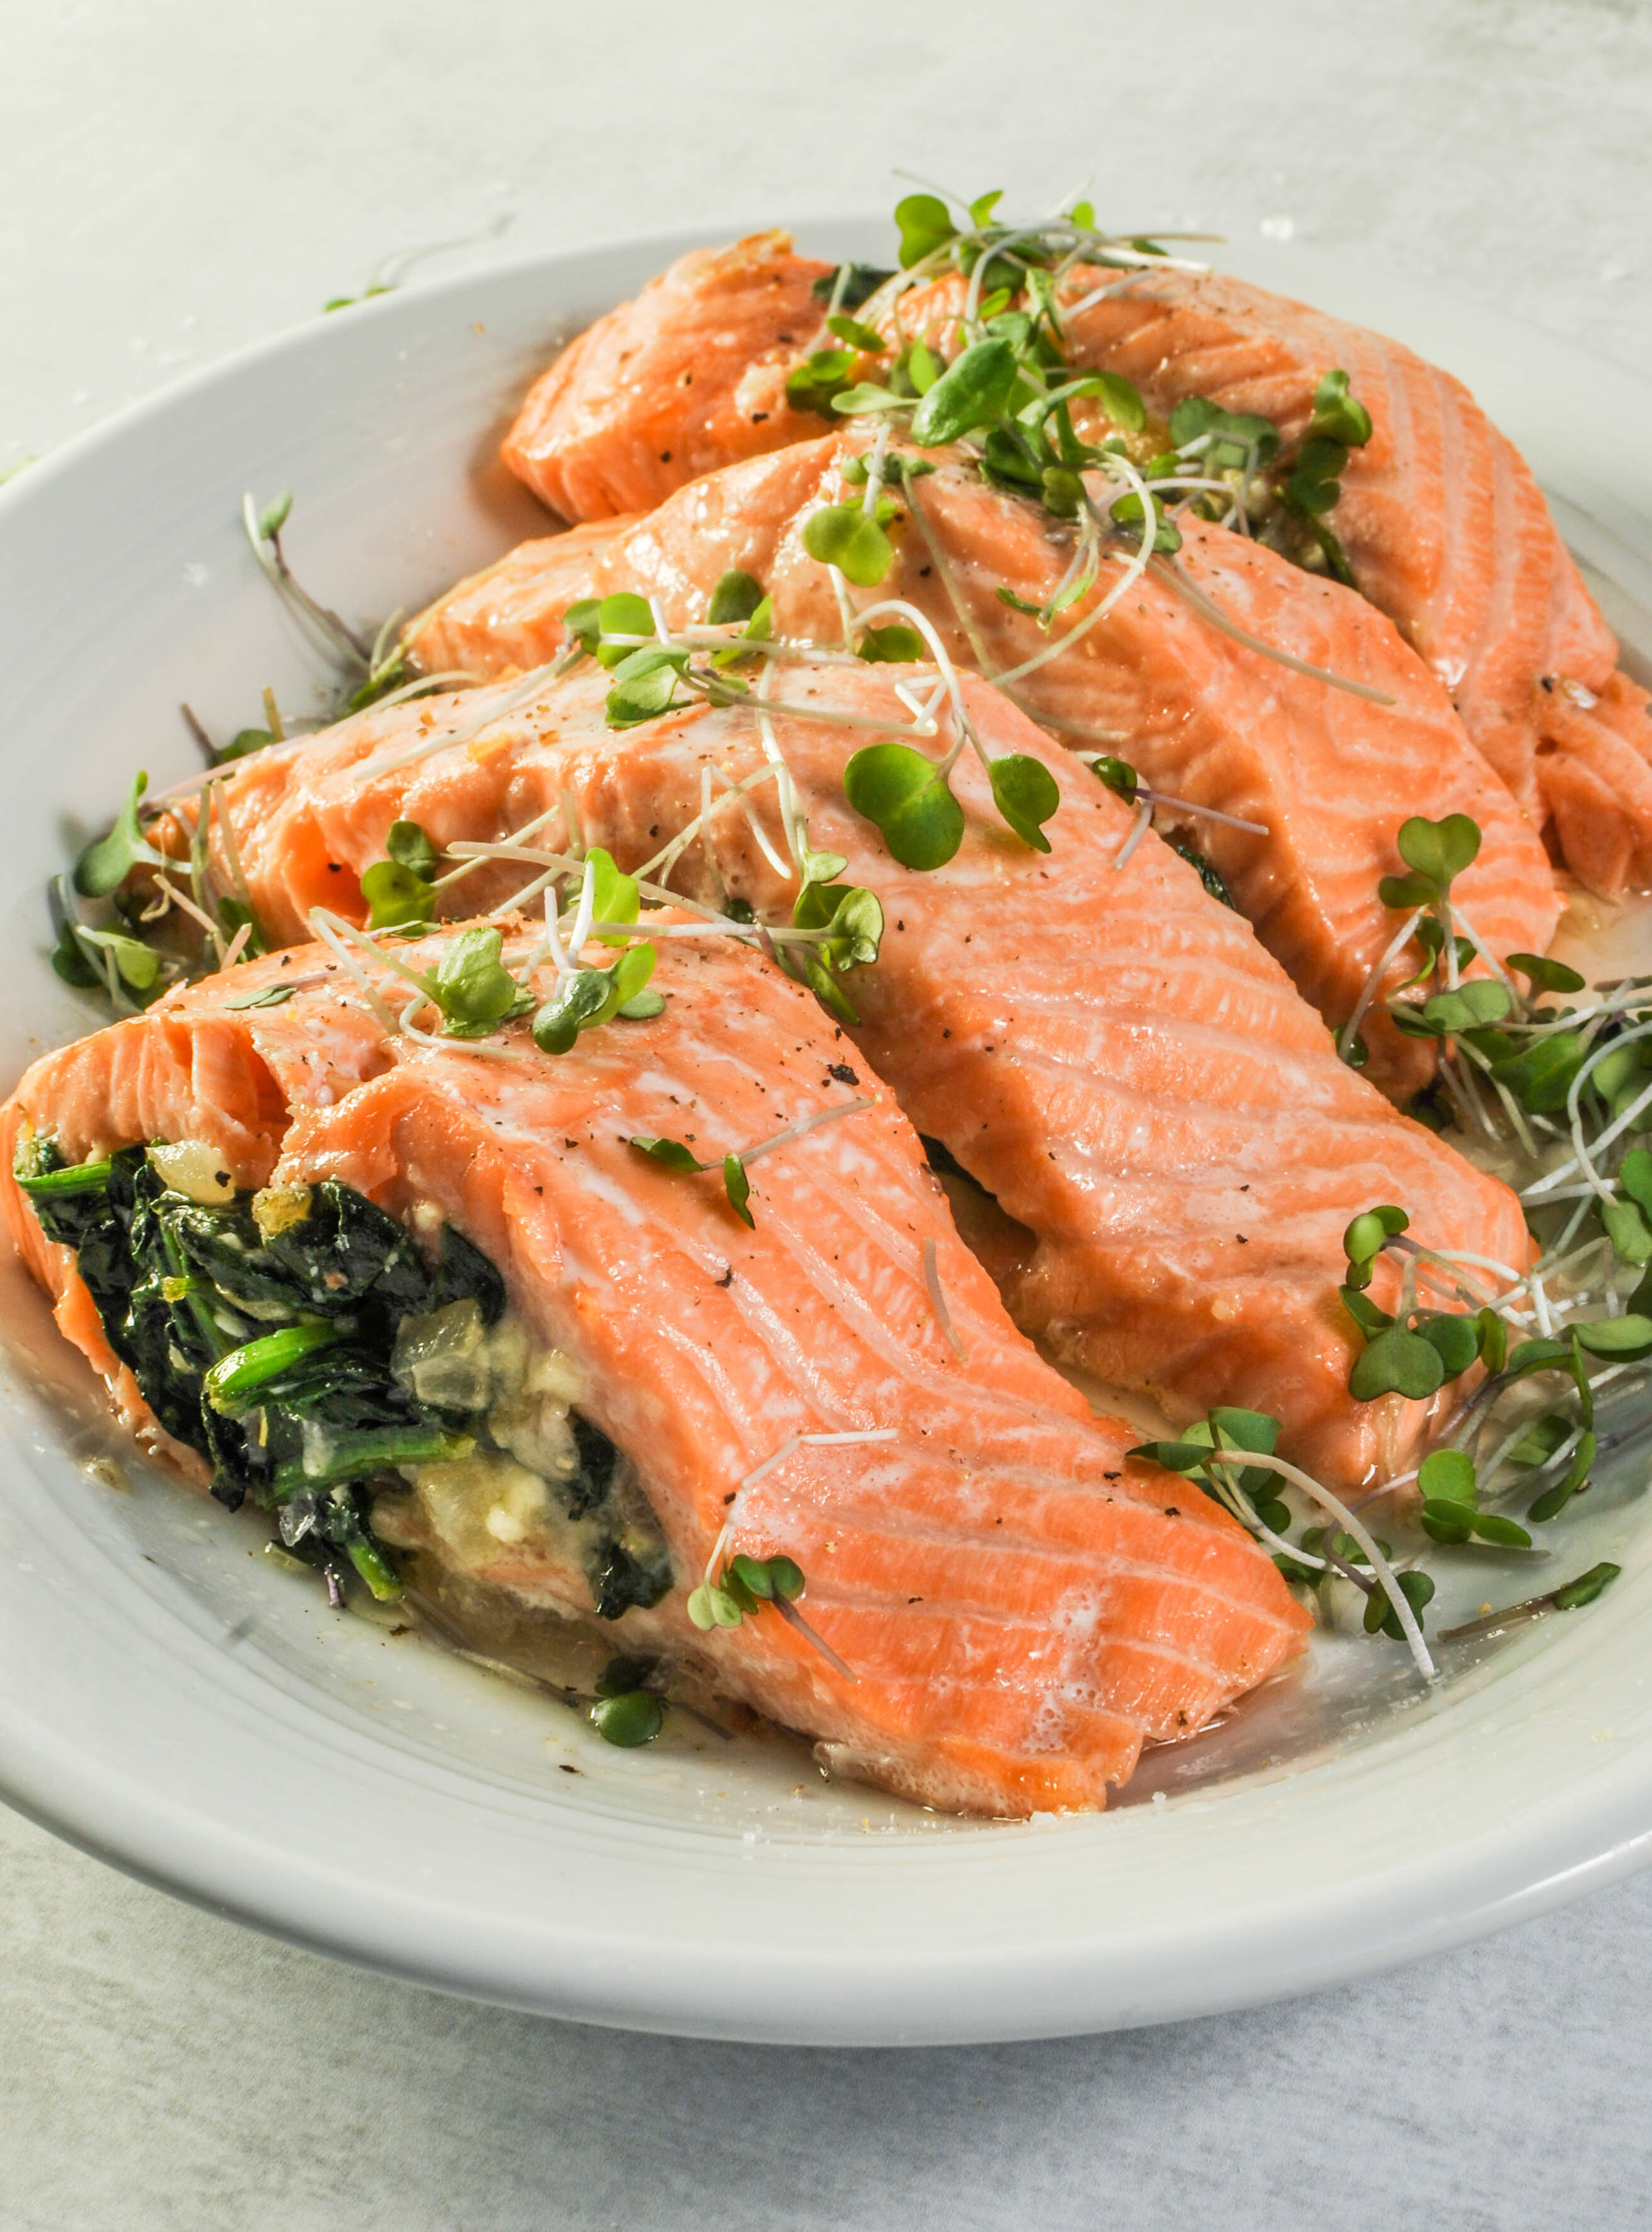 Salmon Stuffed with Spinach & Feta. Dinner for four people in less than 20 minutes! This healthy recipe is a weeknight favorite. #salmon #spinach #dinner